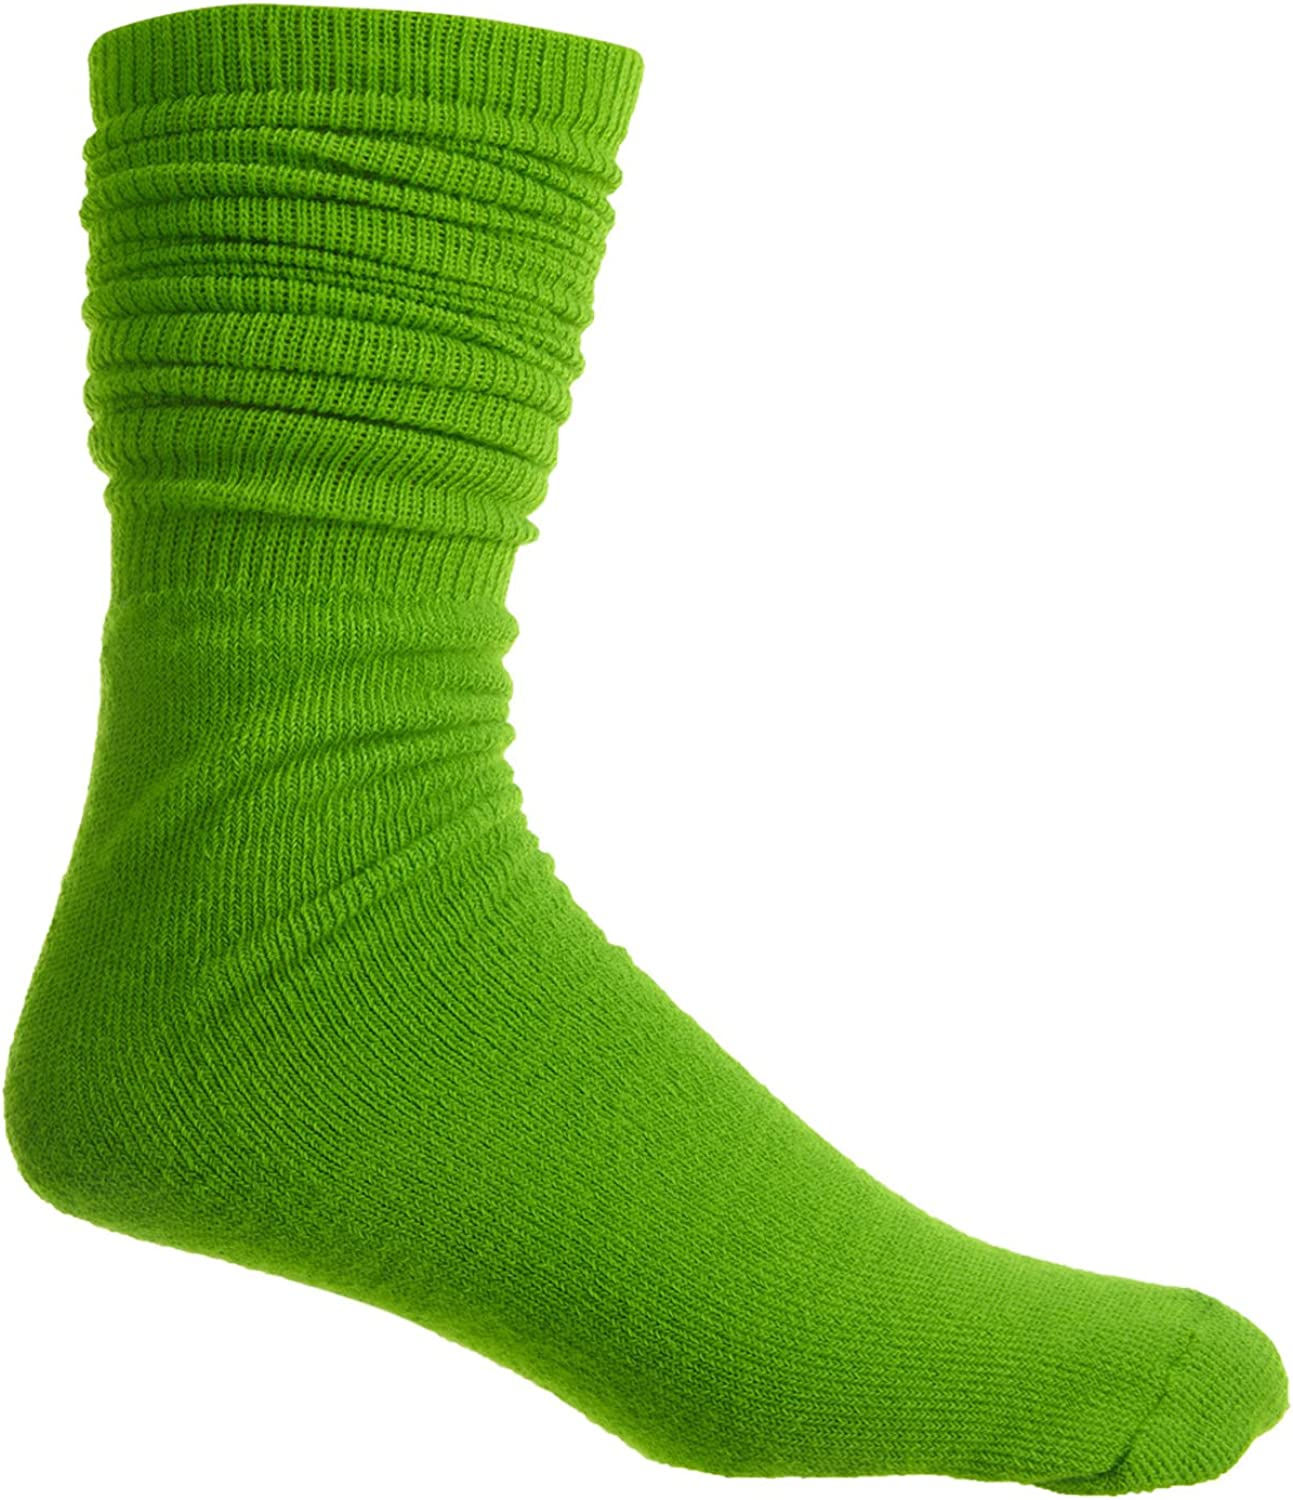 Wear The Pear All Sport Socks Mens Style One Size for All ASNGAD-Lime Size